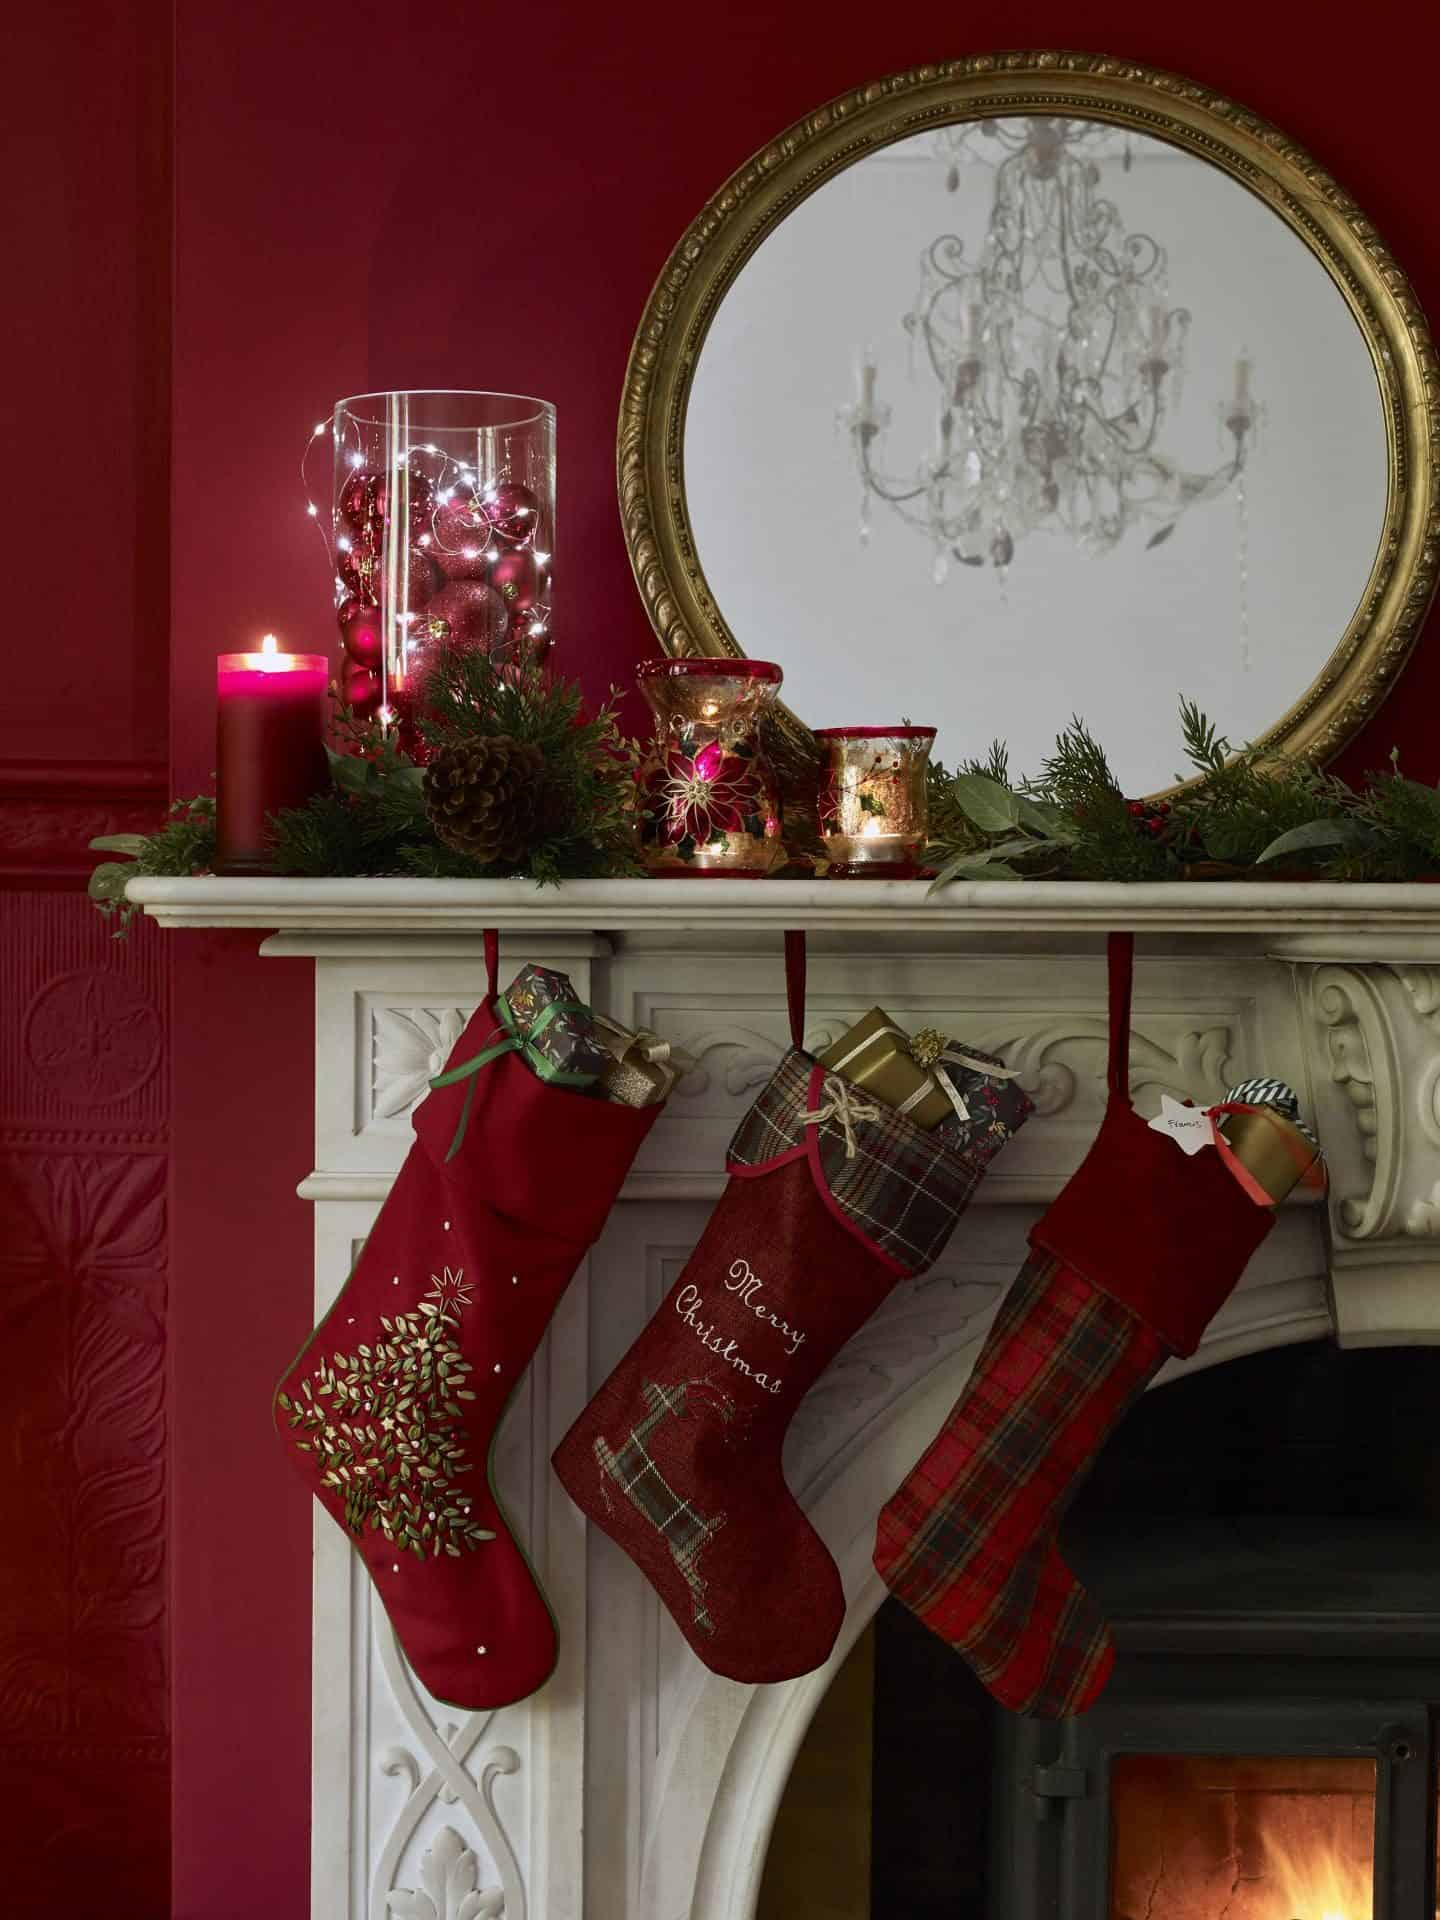 Dobbies Traditional Elegance Christmas Trend - stockings hanging on the fireplace